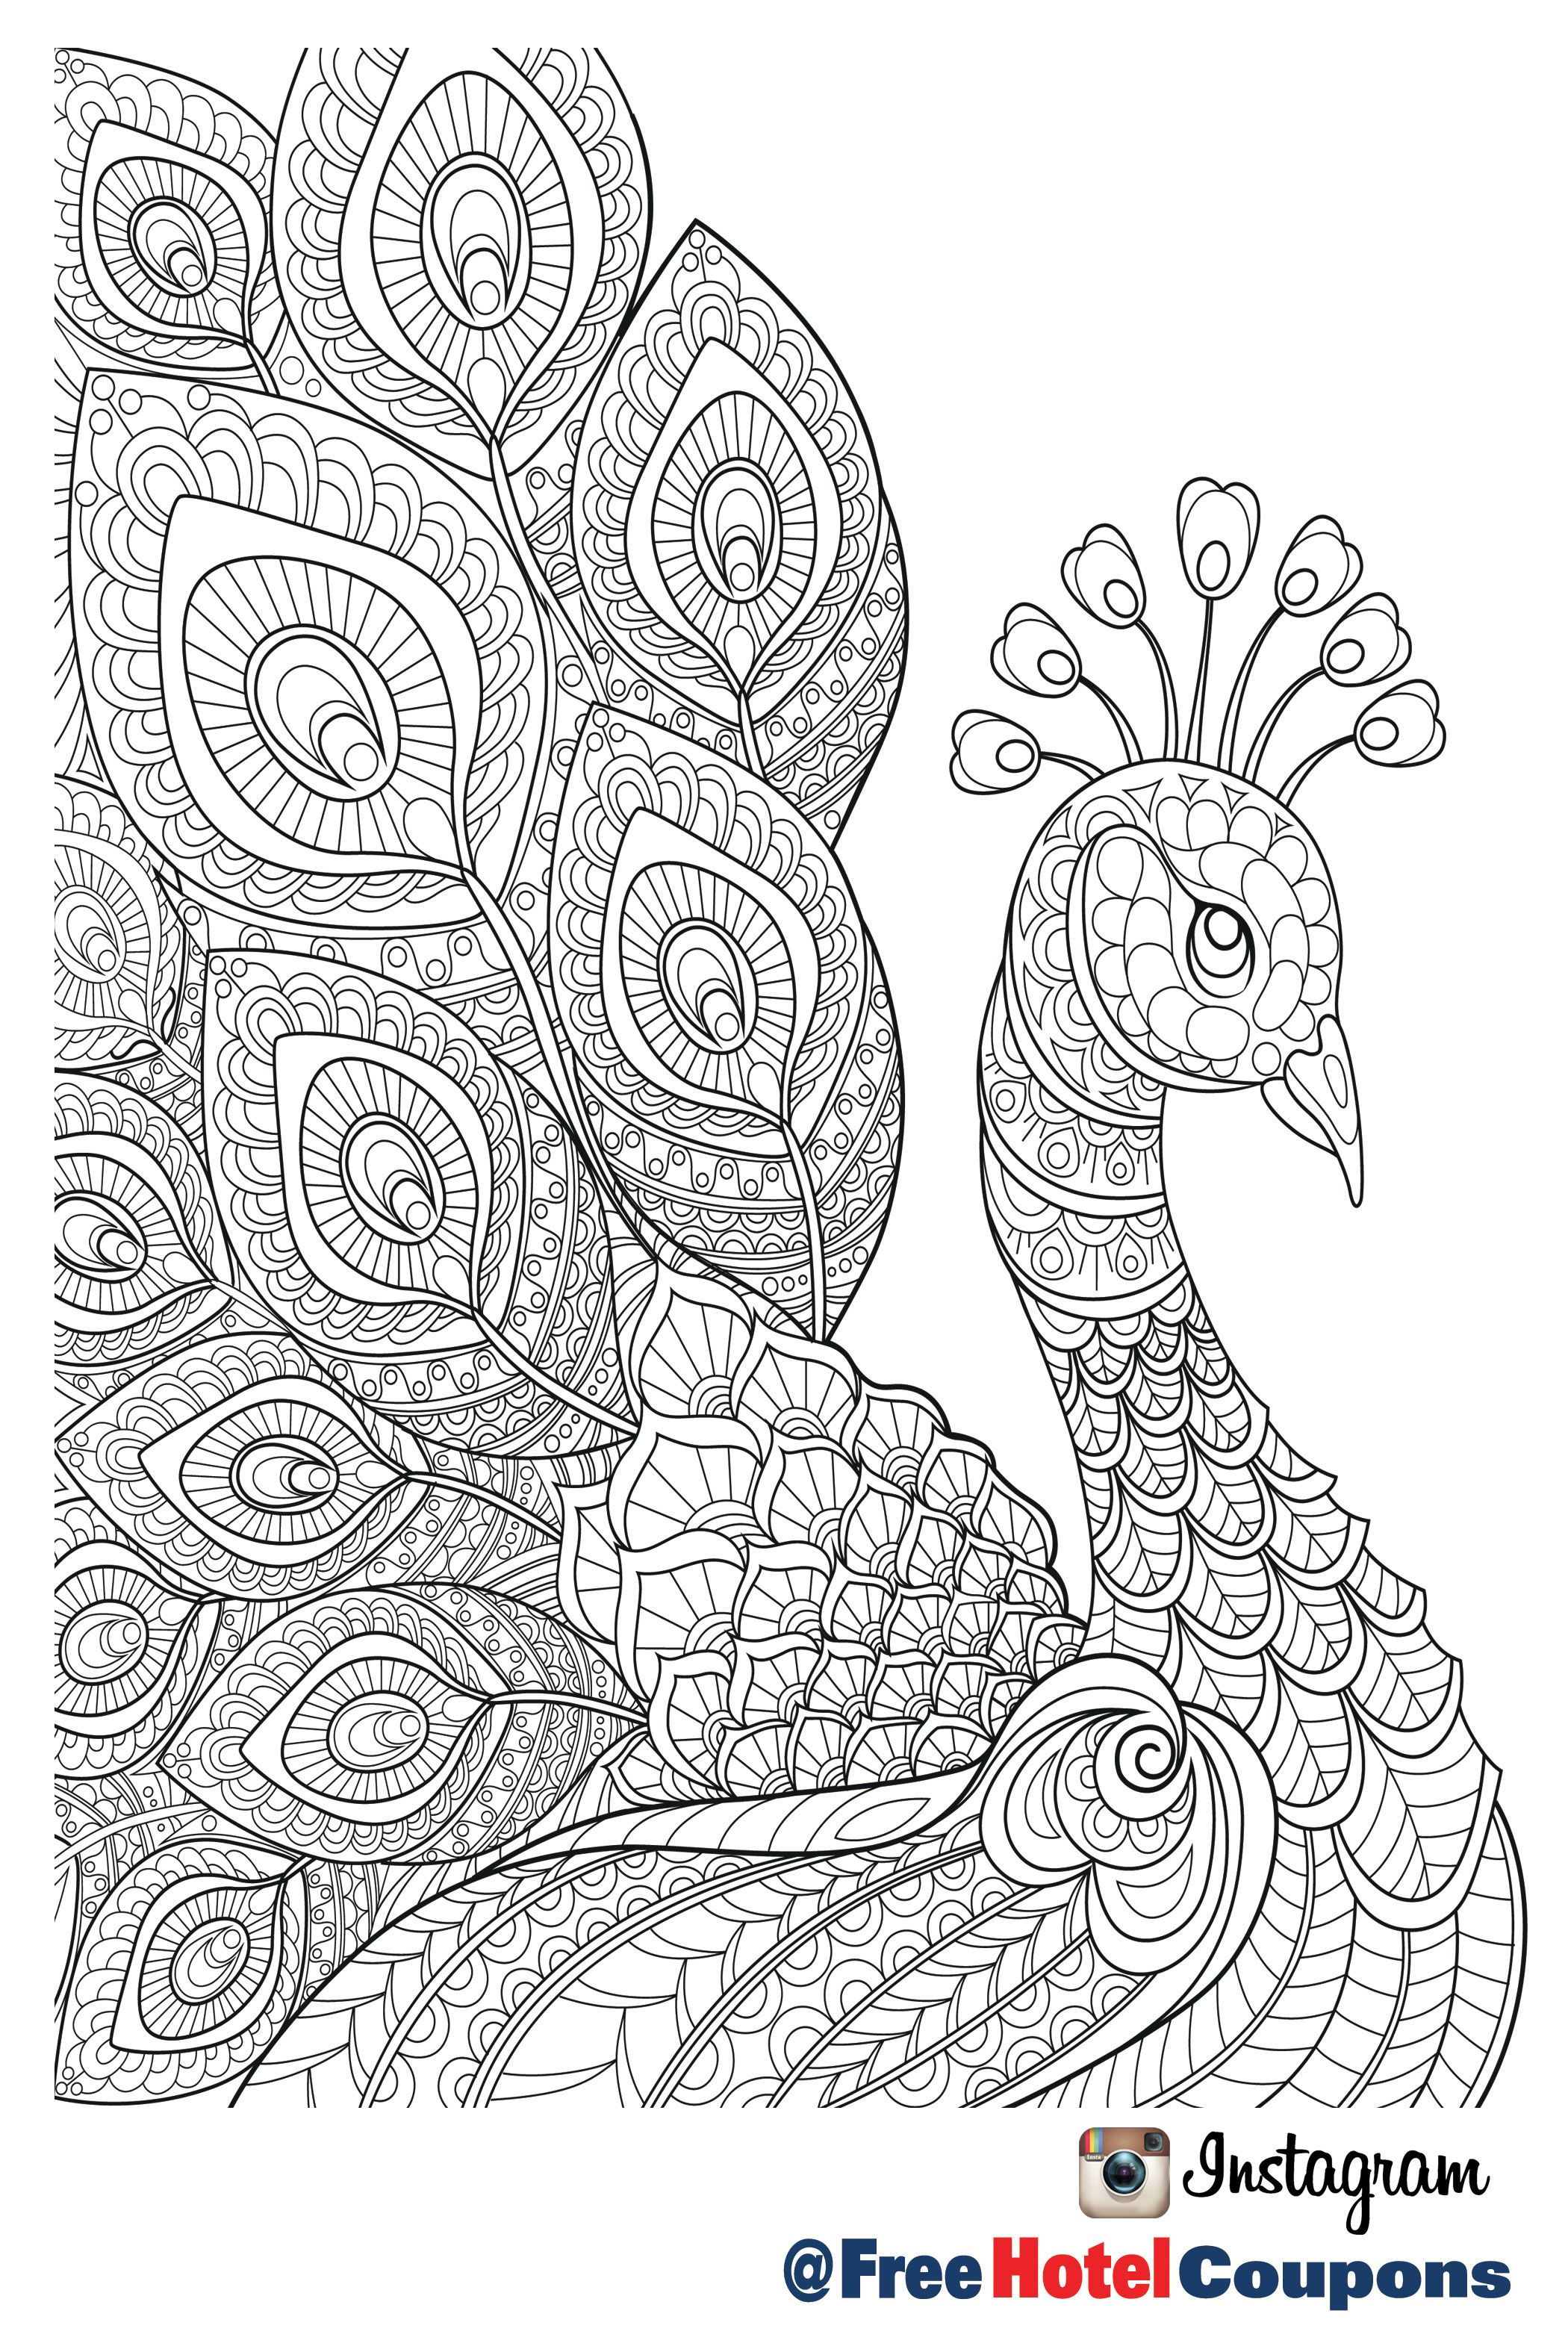 Peacock Coloring Pages Image By Free Hotel Coupons On Coloring